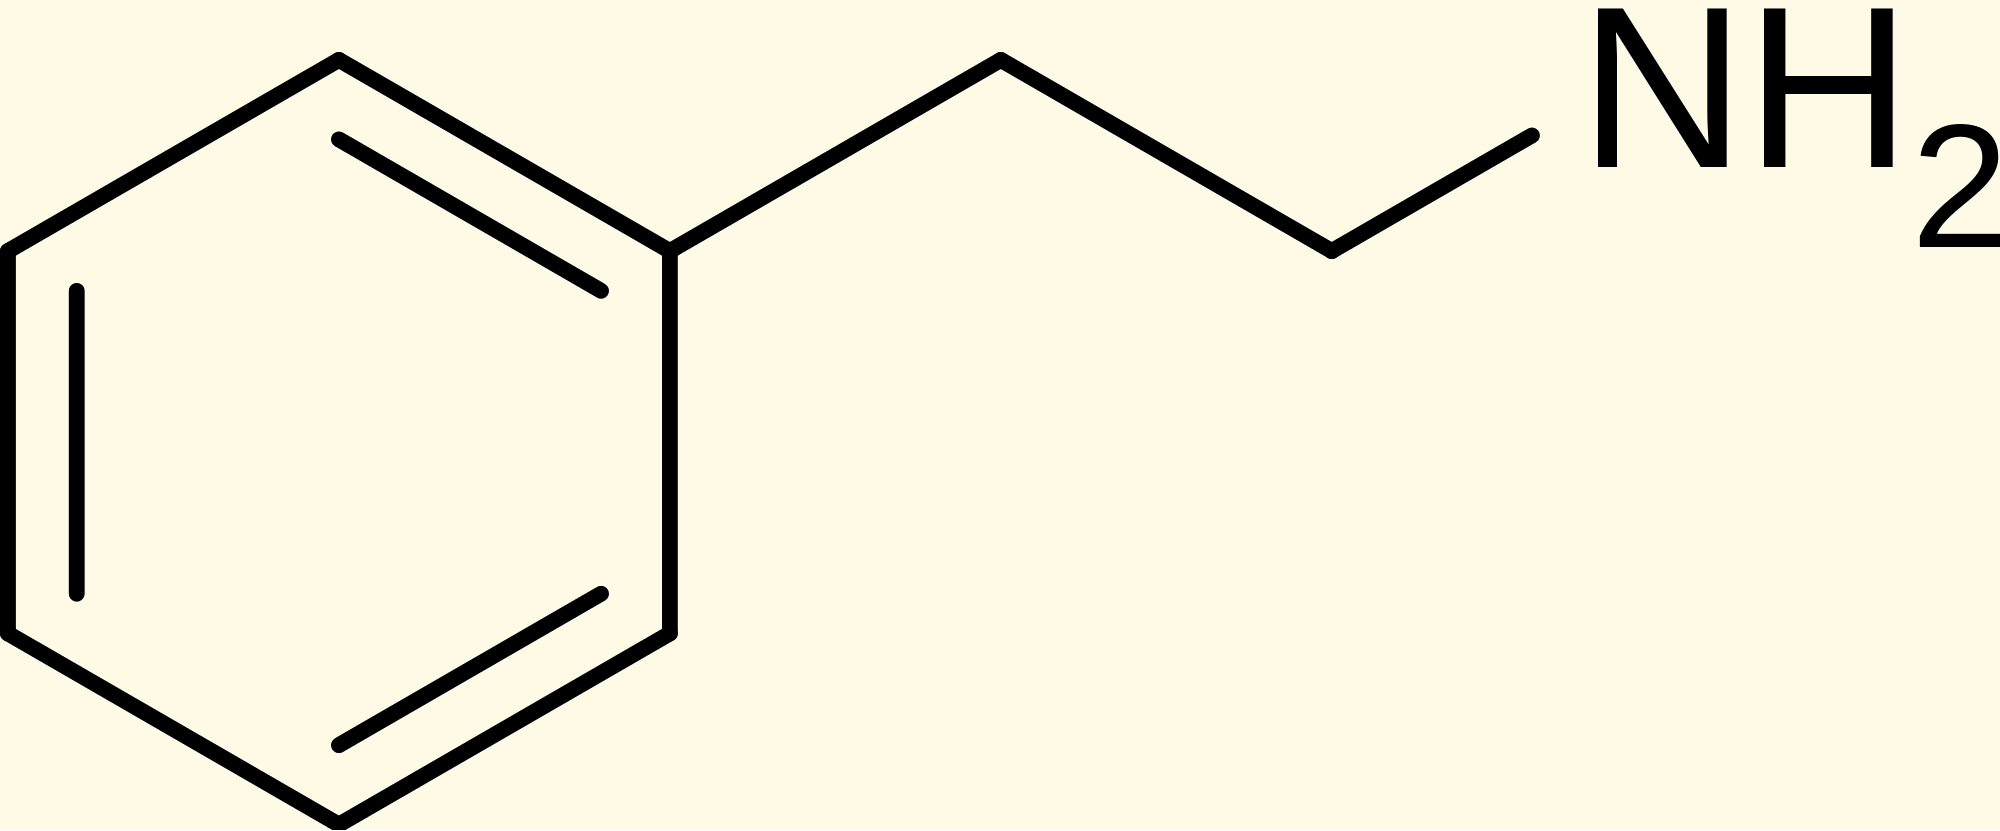 Phenethylamine gets us in the flow.